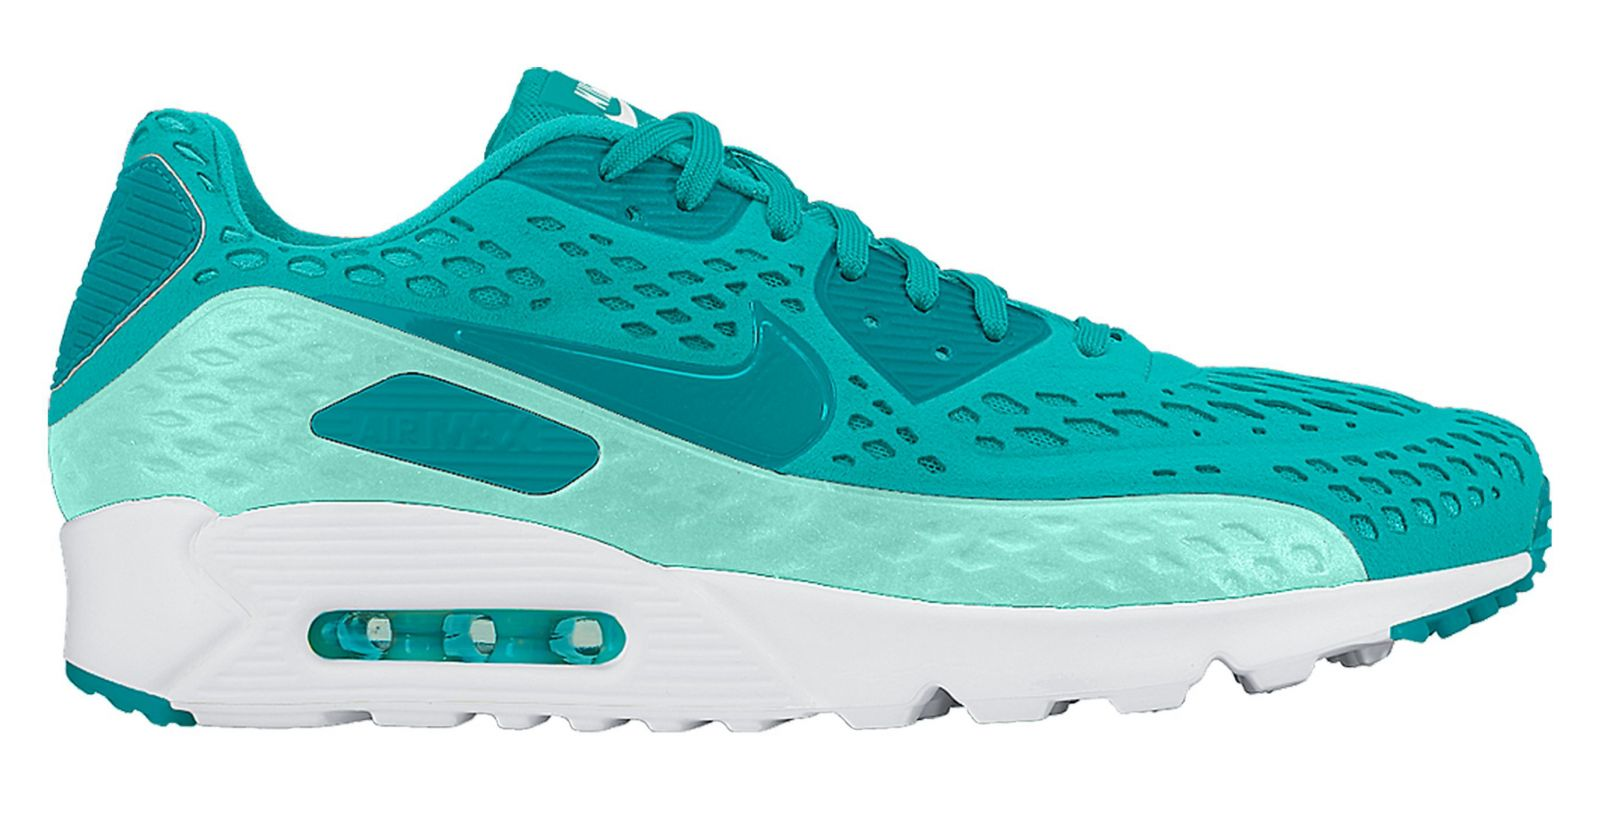 The Nike Air Max 90 Goes Ultra for its 25th Anniversary  f03956757b